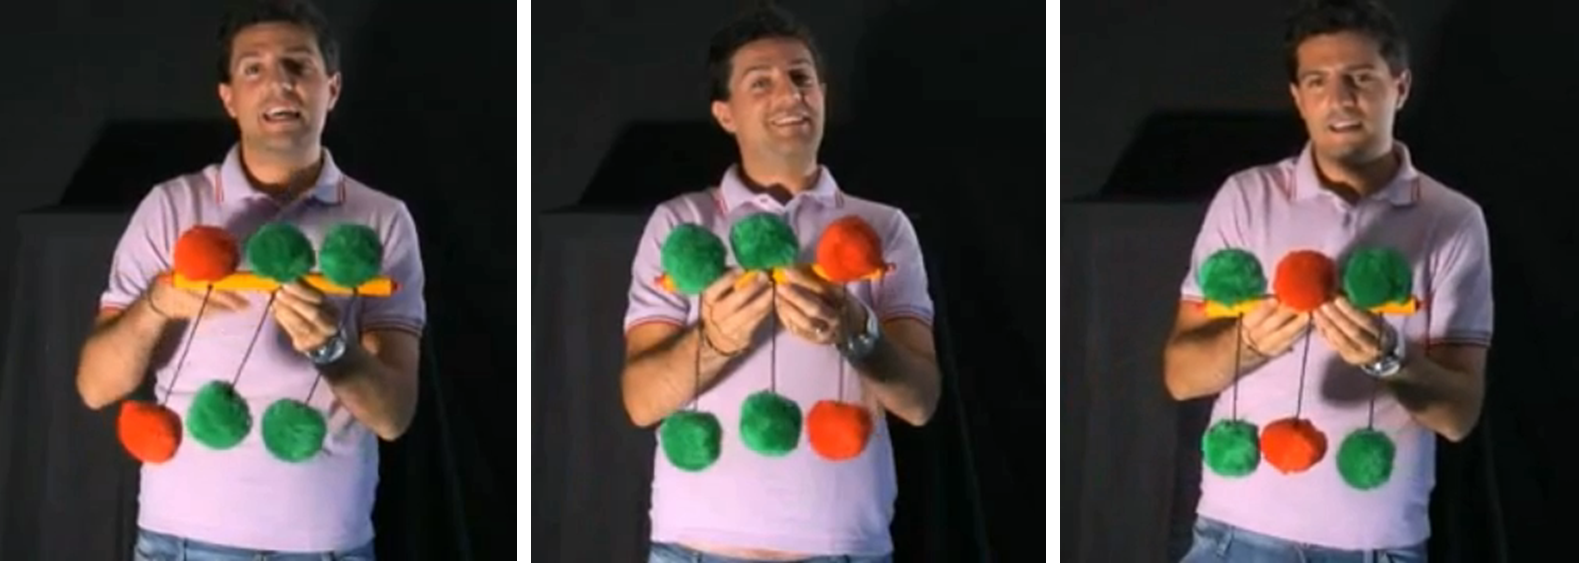 difatta-jumping-pom-poms-magic-trick-gospel-3-part.png